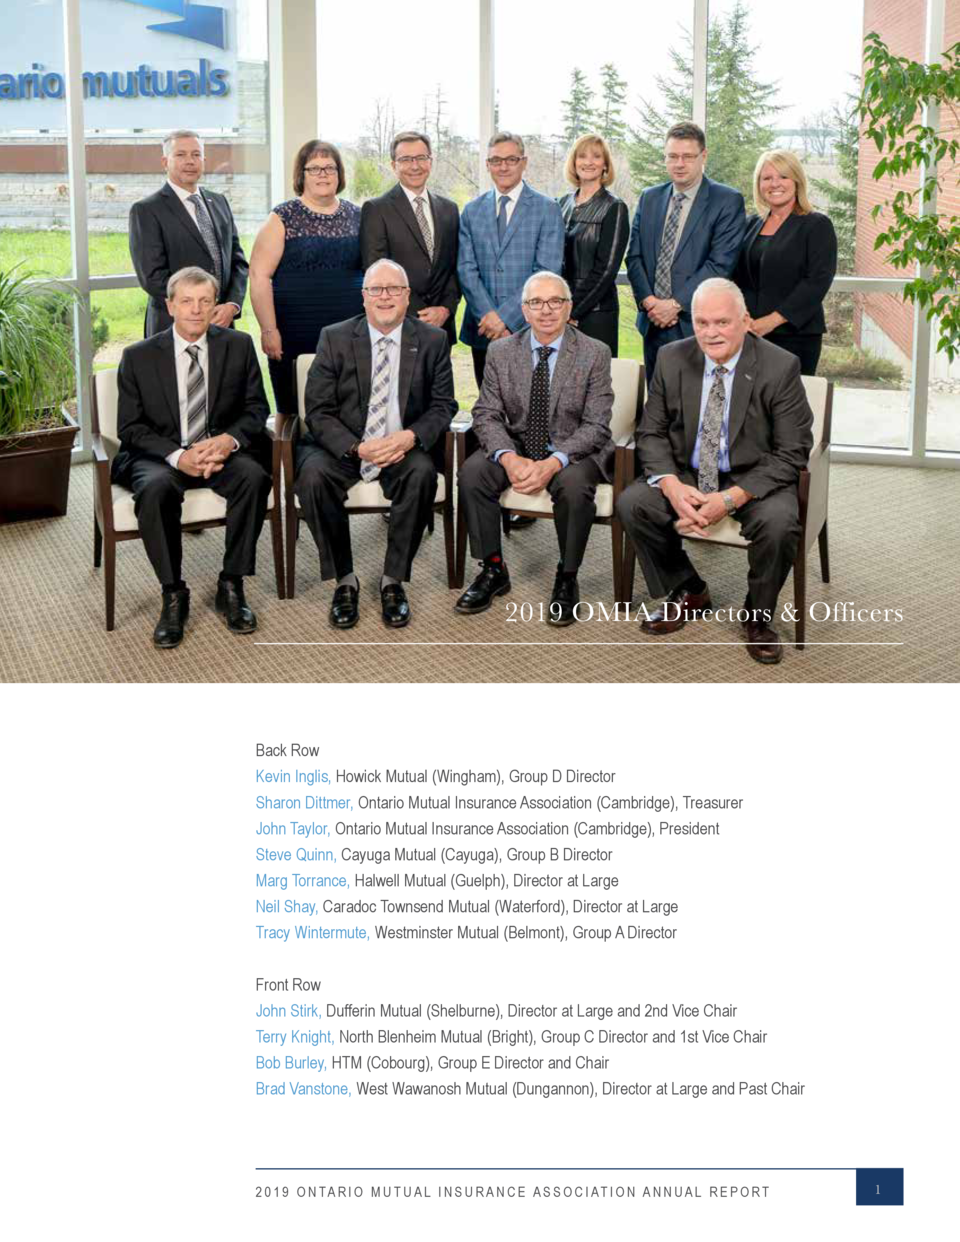 2019 OMIA Directors   Officers  Back Row Kevin Inglis, Howick Mutual  Wingham , Group D Director Sharon Dittmer, Ontario M...